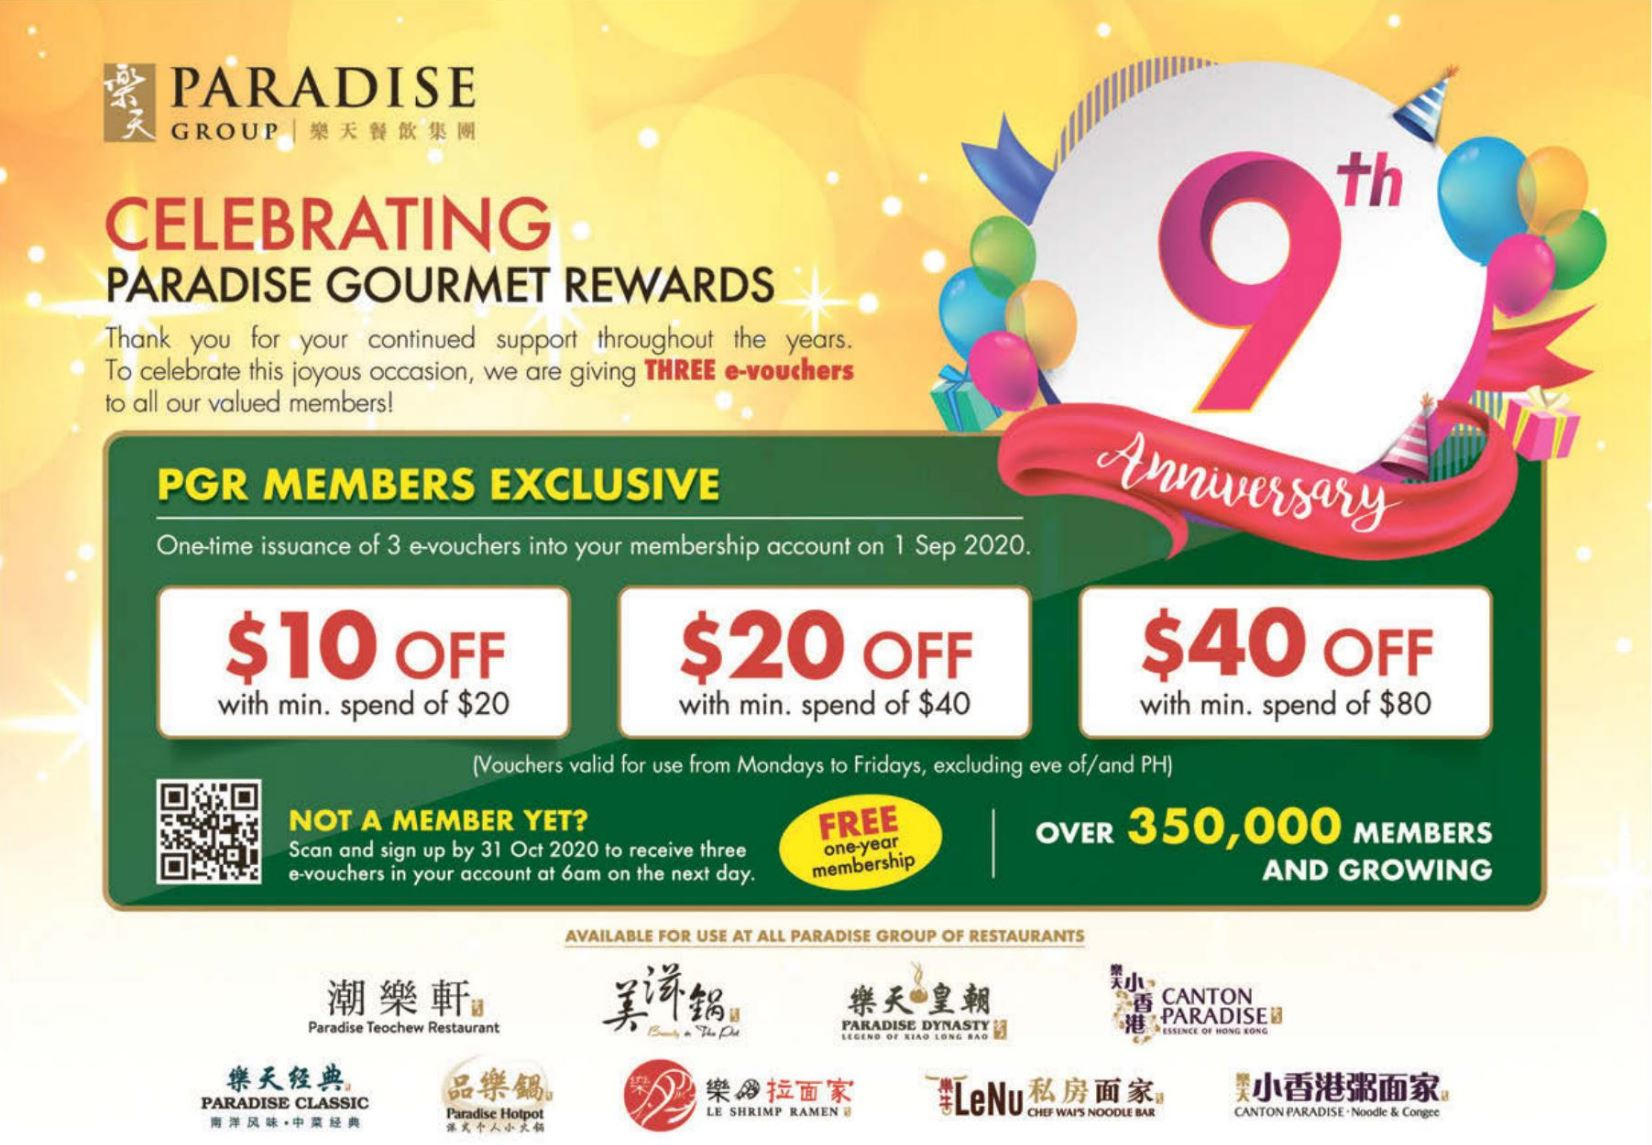 Paradise Group celebrates 9th anniversary with free $10, $20 and $40 vouchers giveaways